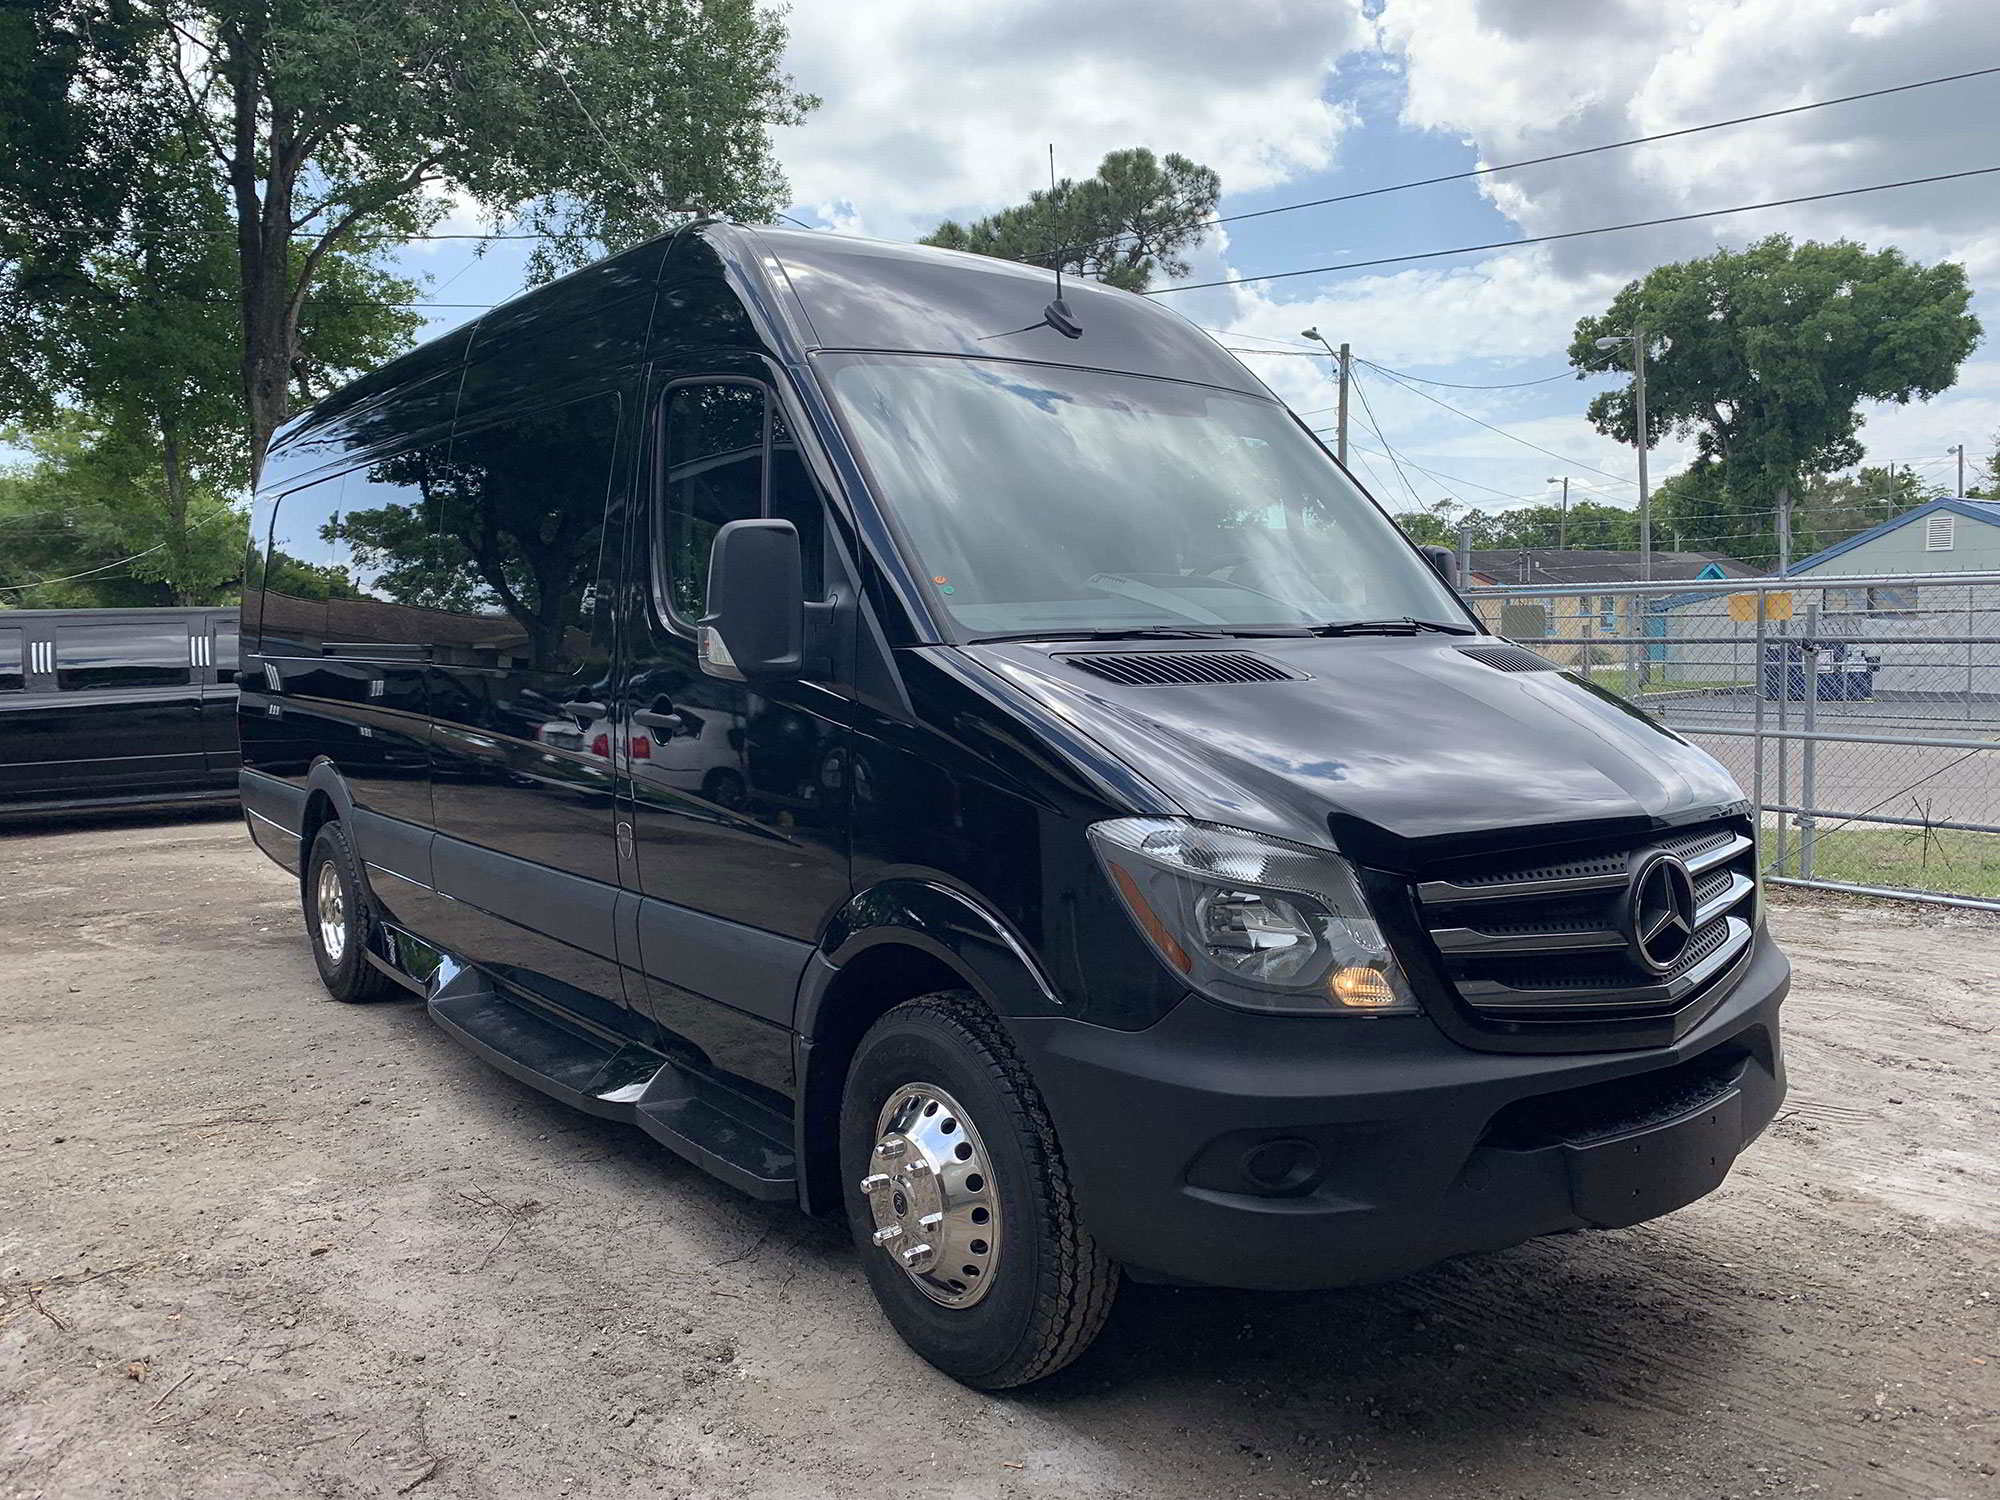 Photo of a 12 Passenger Black Mercedes Benz Sprinter Van, Graduation Clearwater High School, Clearwater, Florida.